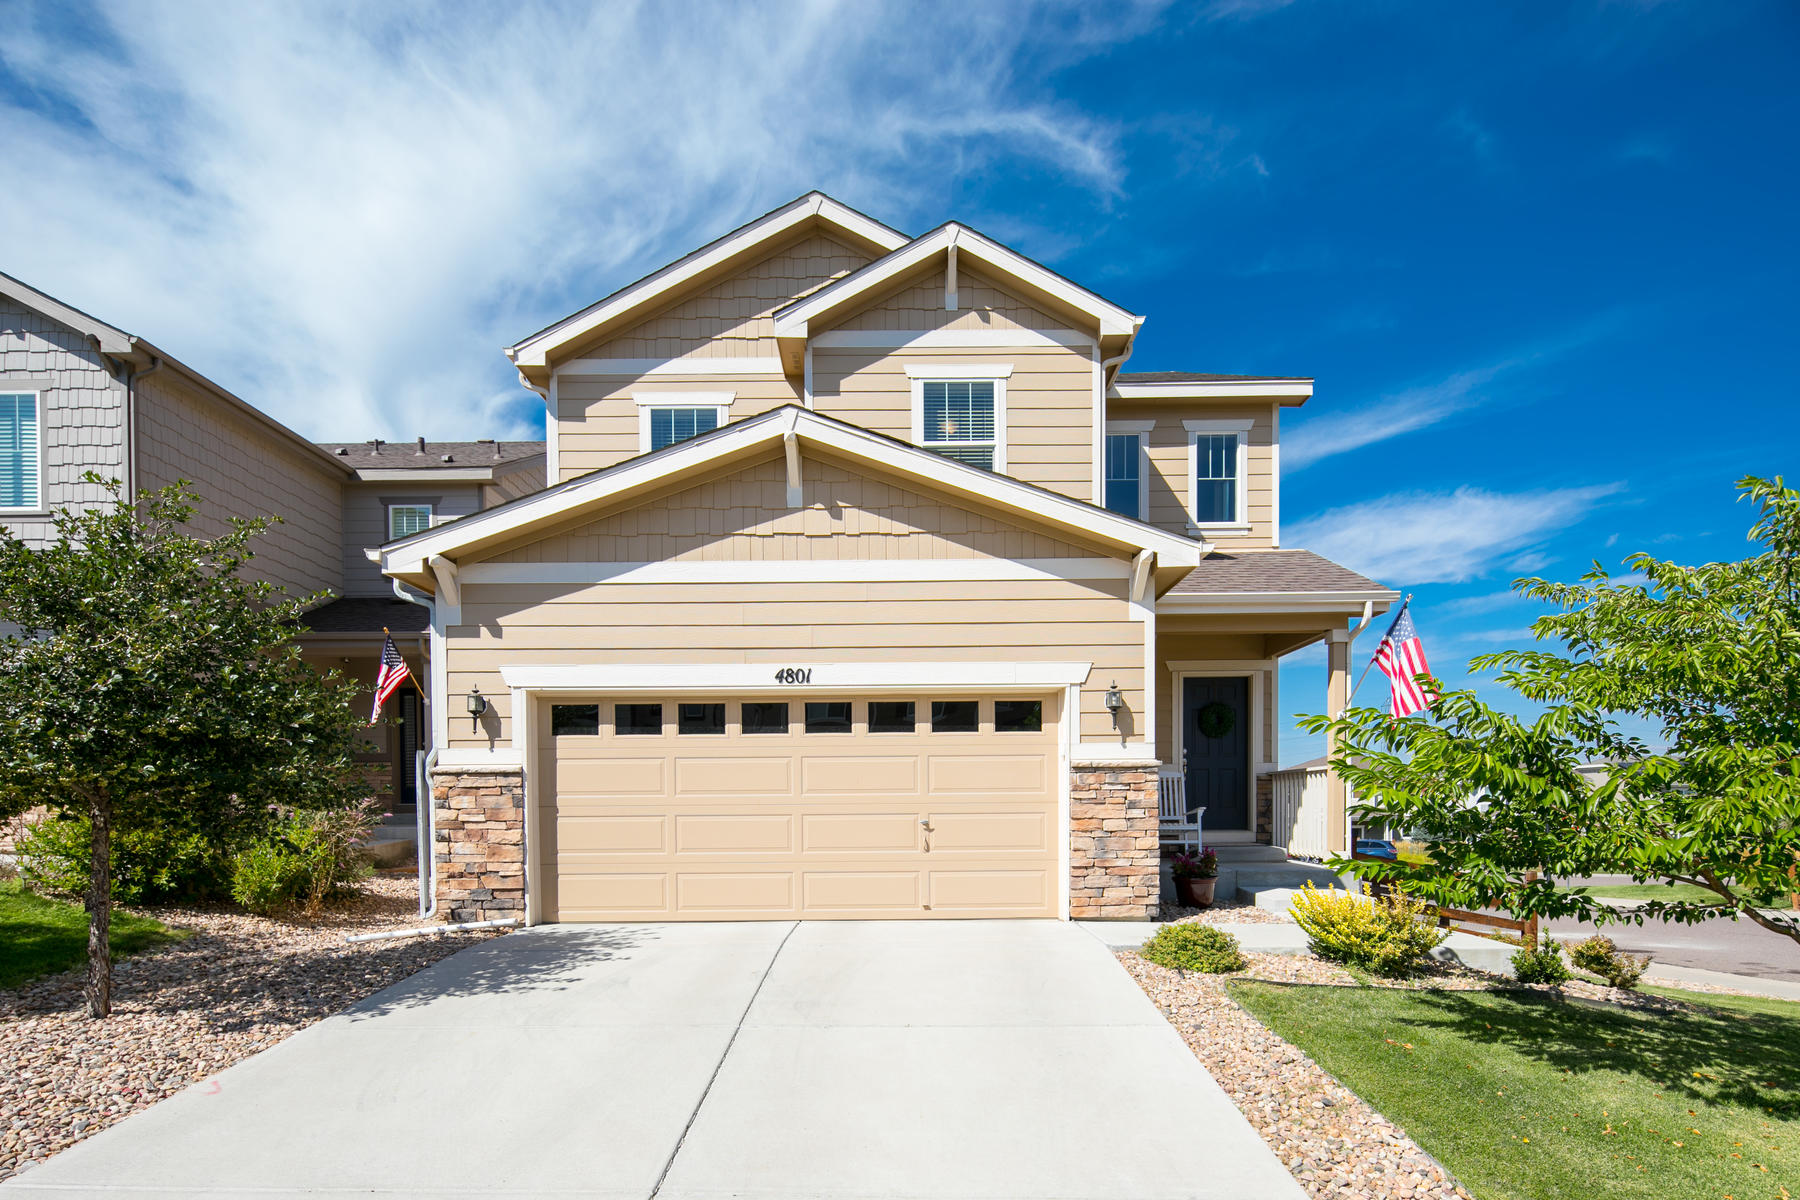 Single Family Homes for Sale at This Wonderful Home Truly Sets Itself Apart! 4801 S Picadilly Court Aurora, Colorado 80015 United States